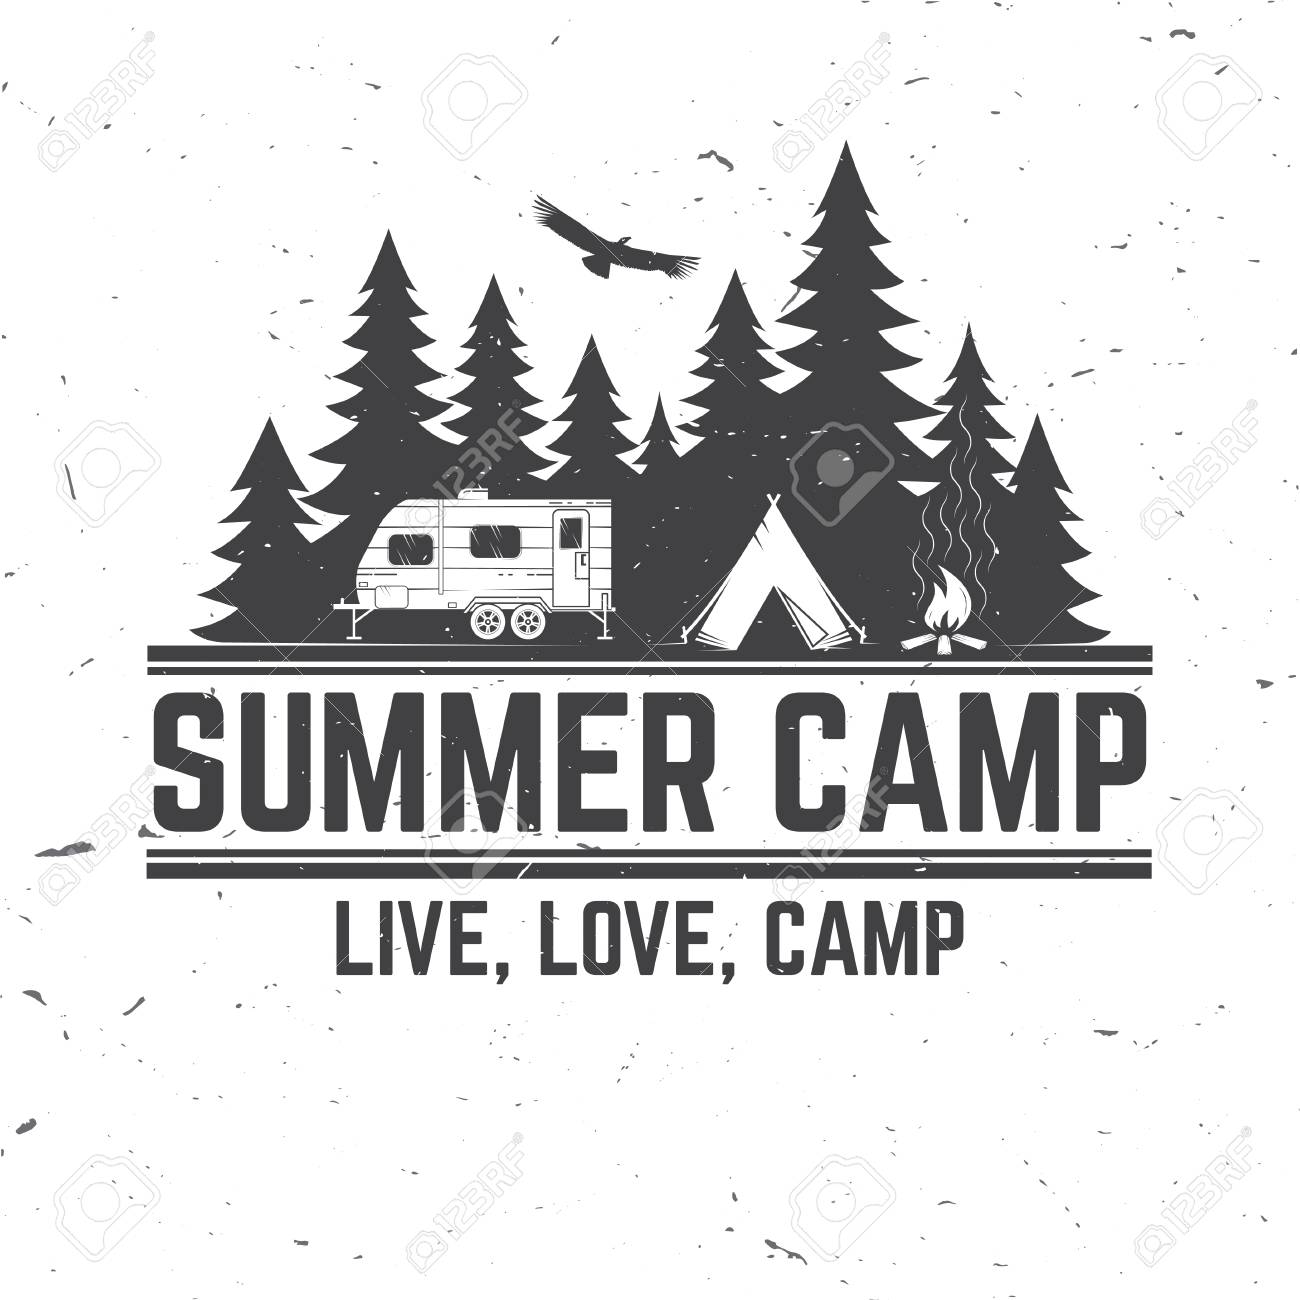 Summer camp. Vector illustration. Concept for shirt or logo, print, stamp or tee. - 77630026